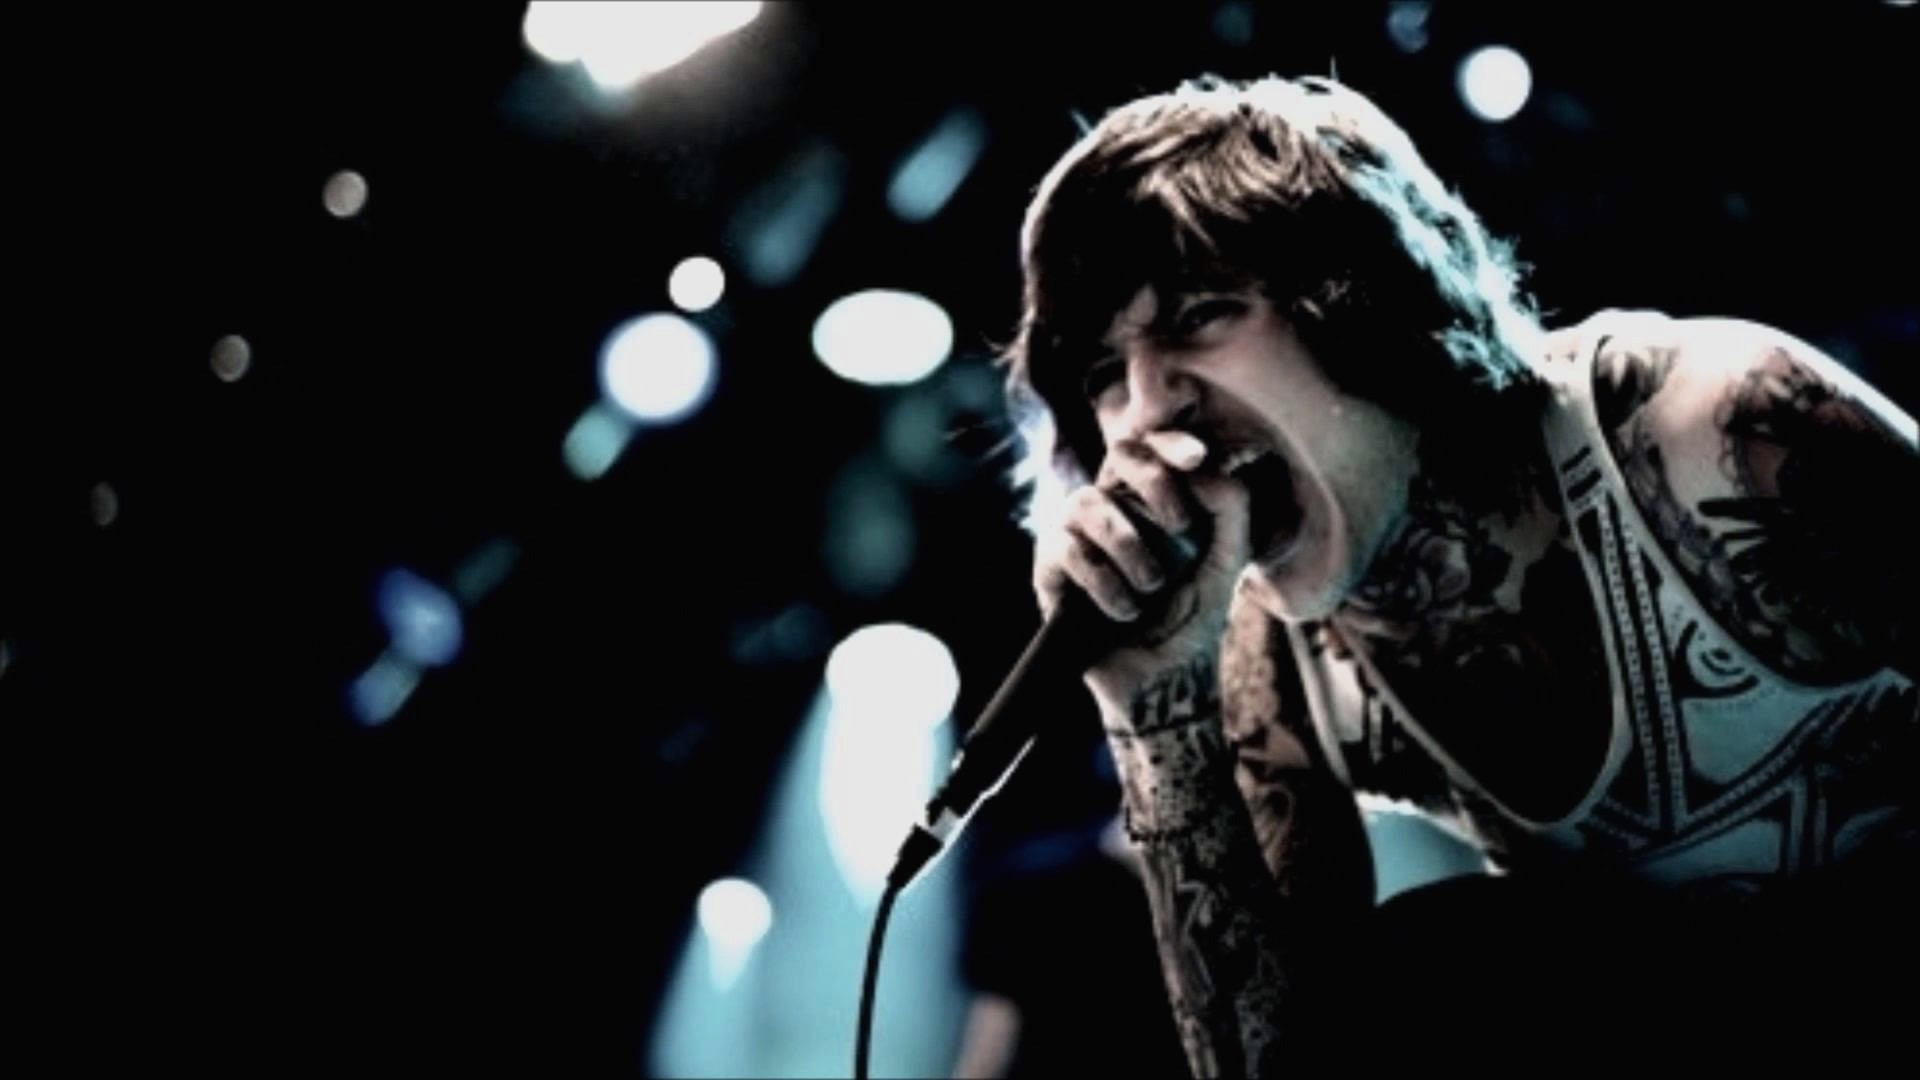 Free Download Bring Me The Horizon Wallpapers Hd Download